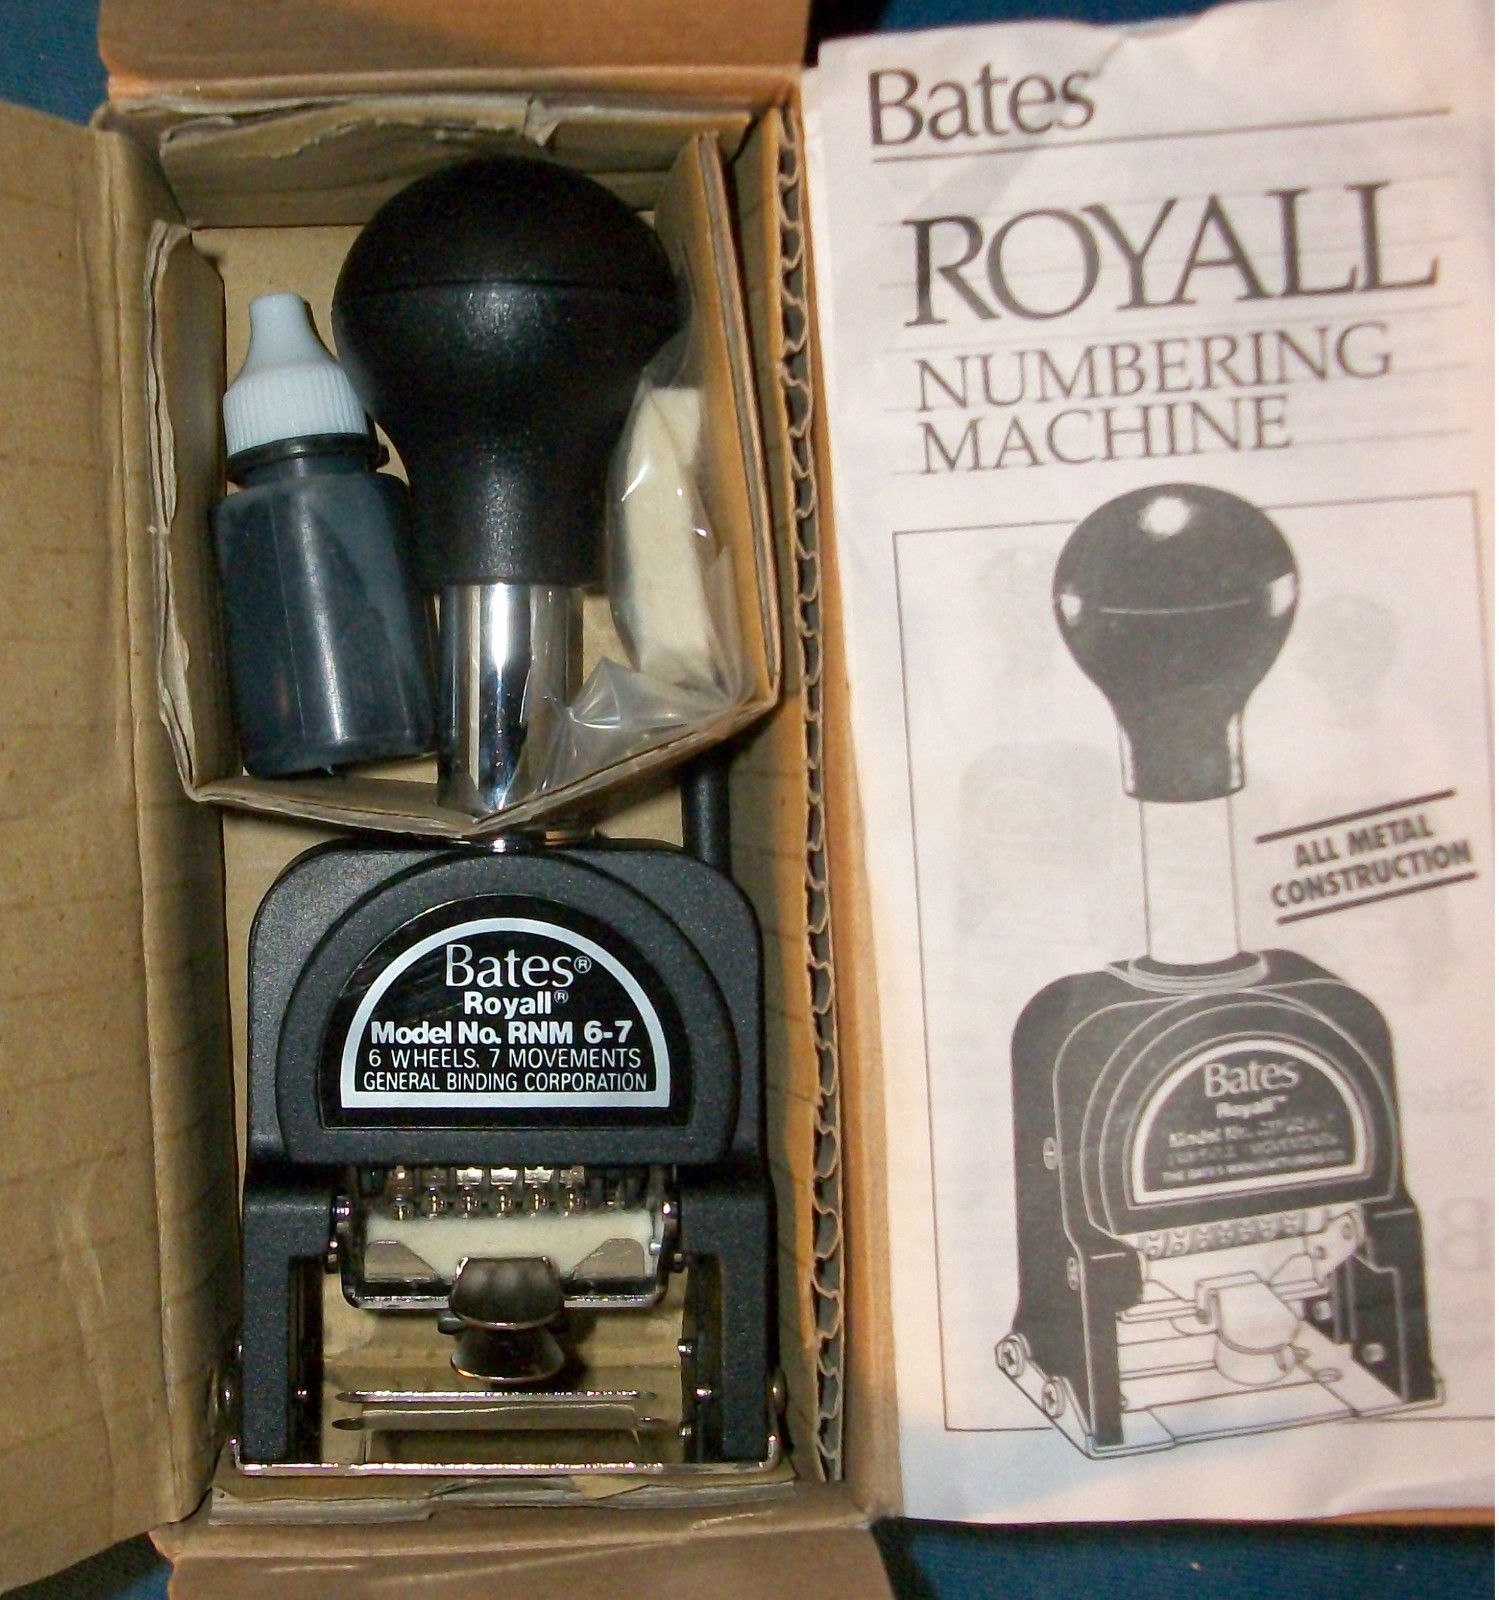 Bates Royal Automatic Numbering Stamp Machine Vintage Officeoffice Suppliesstamps